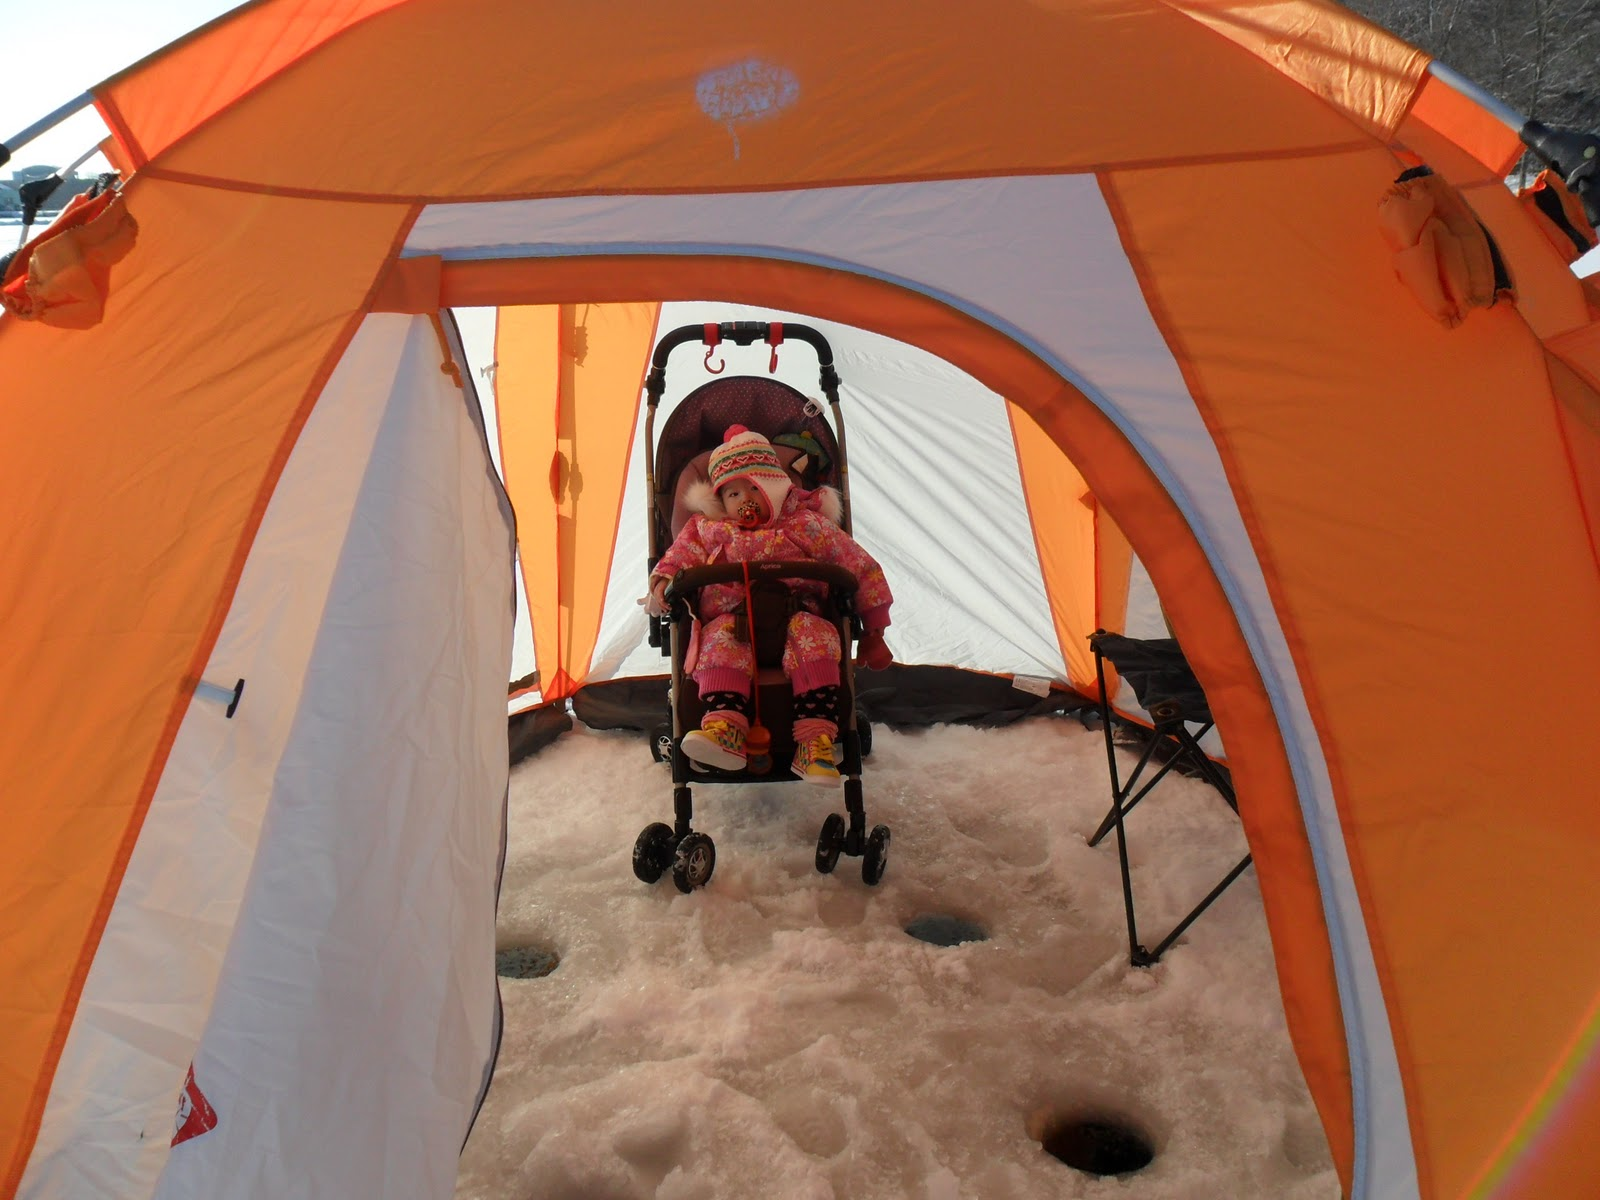 fishing chair tent braided pads chopsticks and hockeysticks we went 氷釣 ice